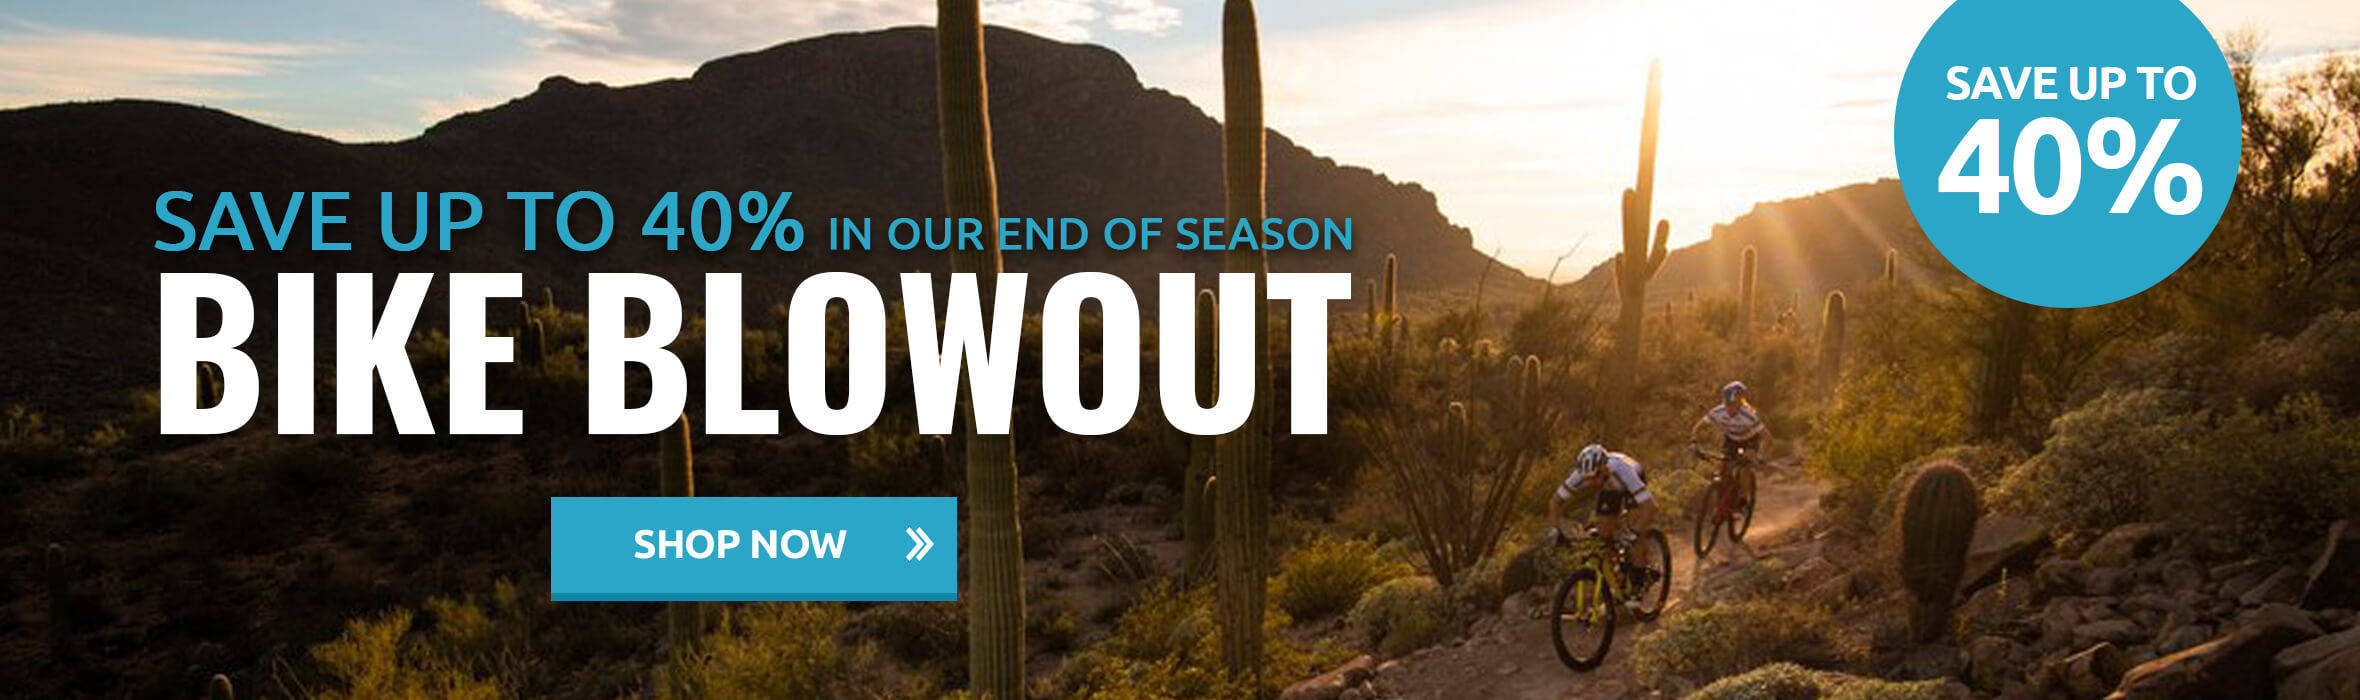 Save Up to 40% in Our End of Season Bike Blowout